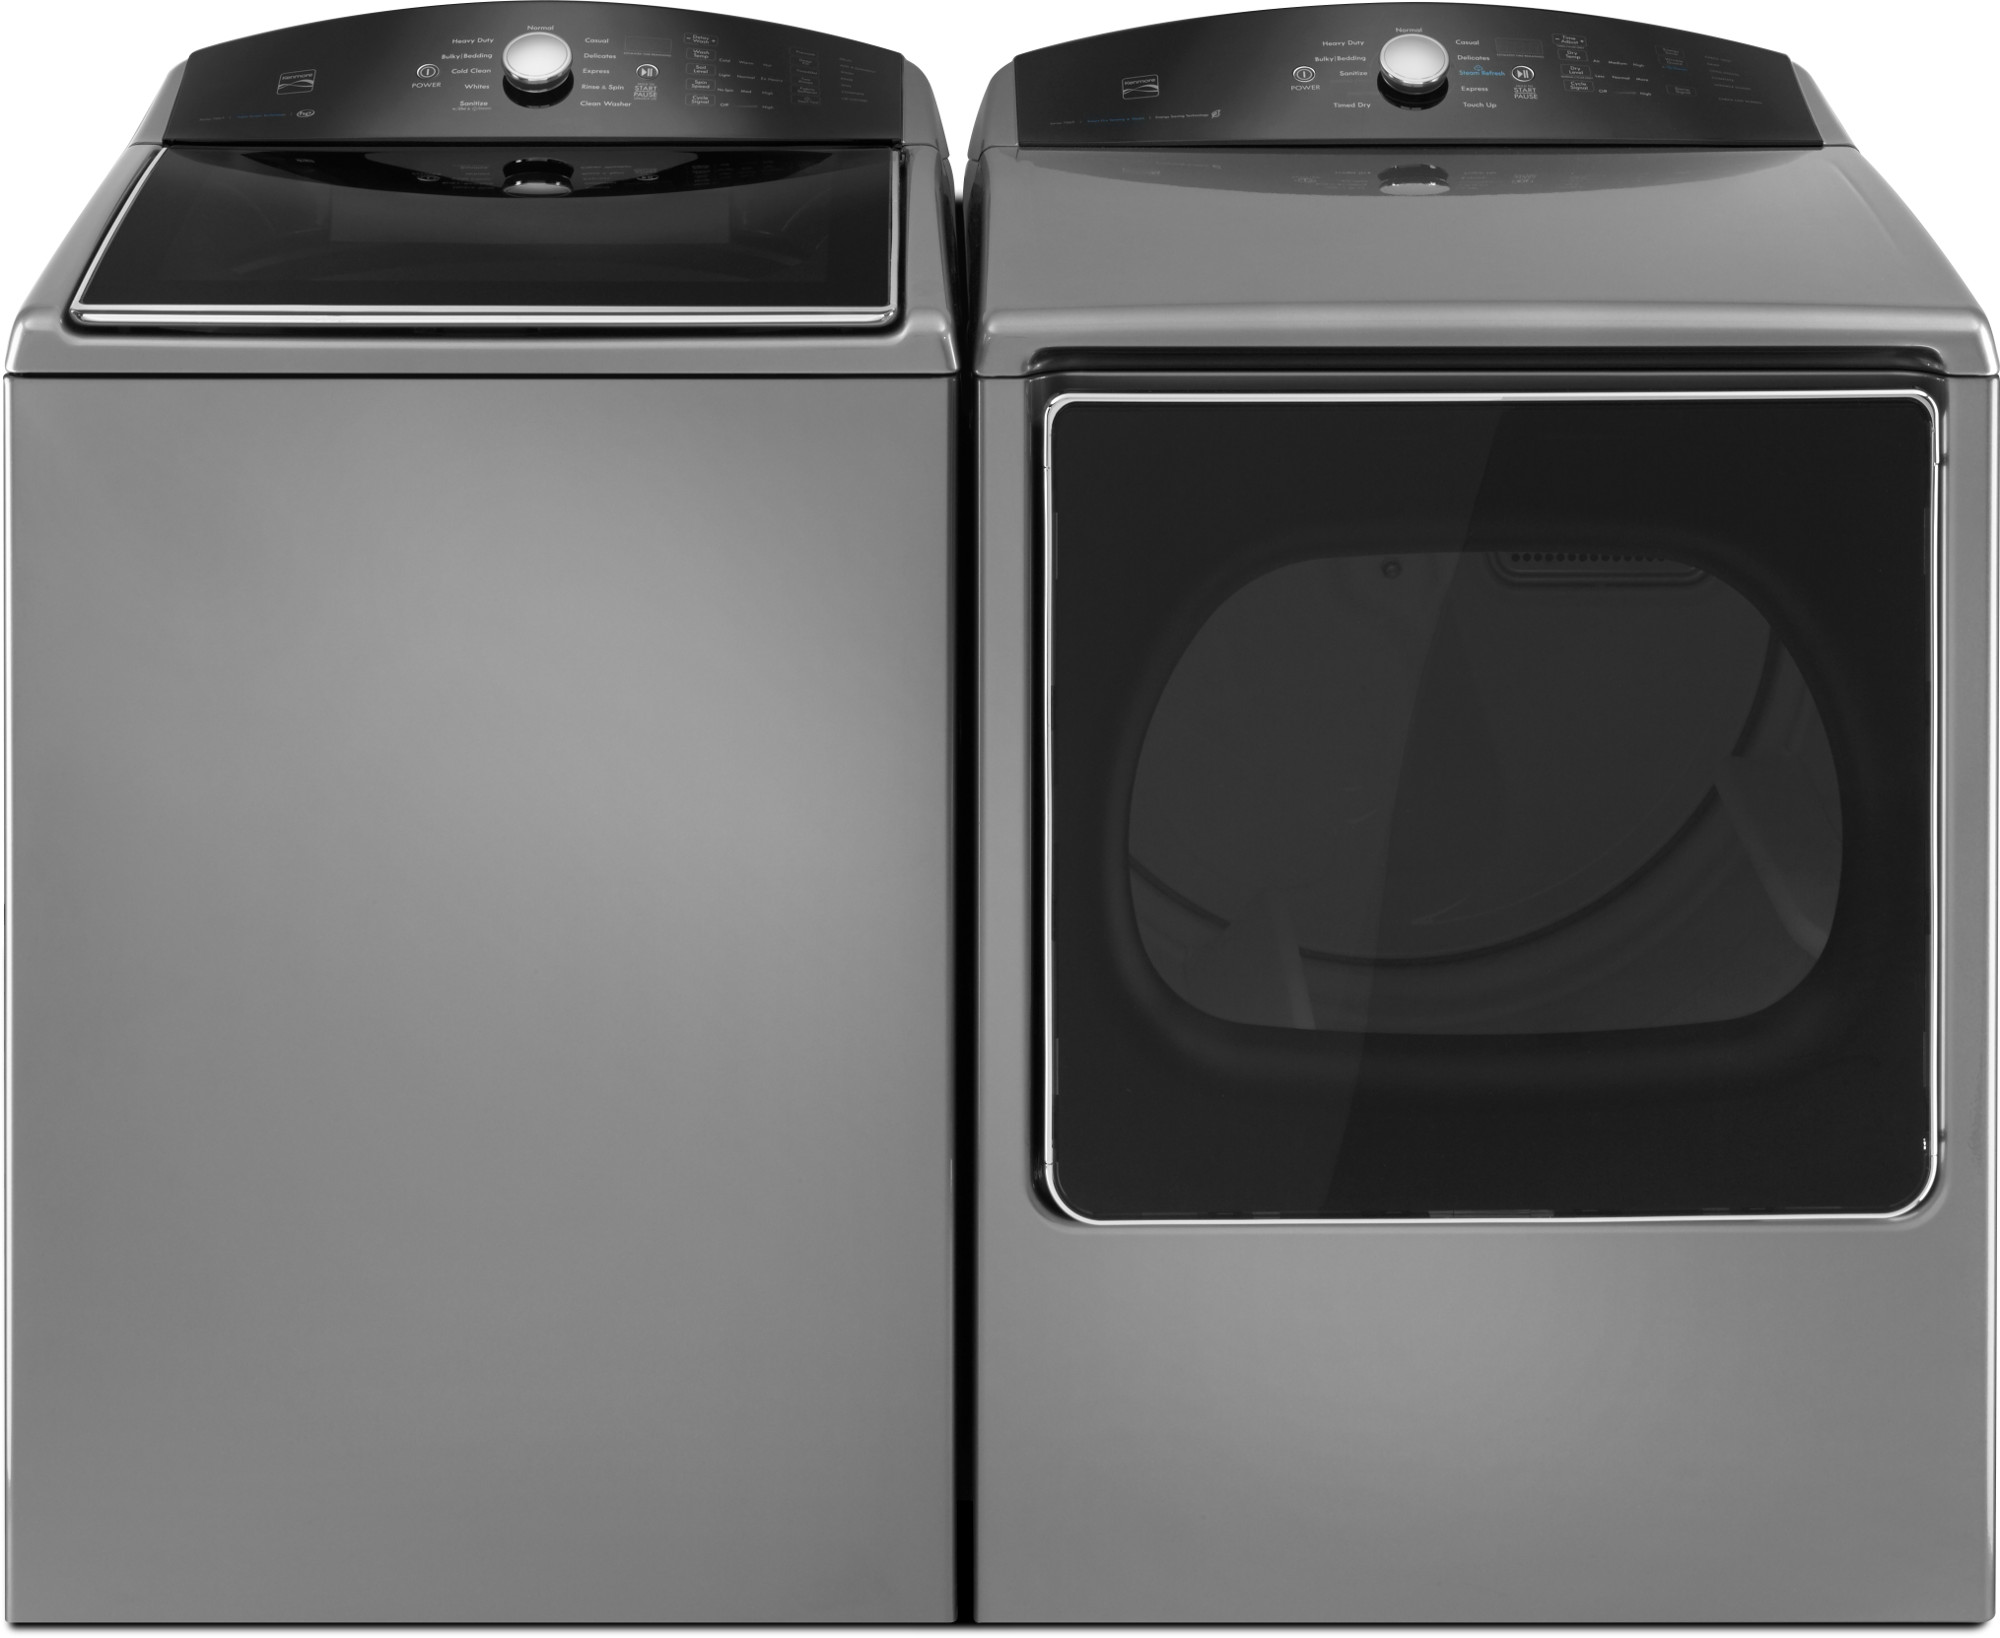 5.3 cu. ft. Top-Load Washer w/Triple Action Impeller & 8.8 cu. ft. Dryer w/Steam Refresh - Metallic